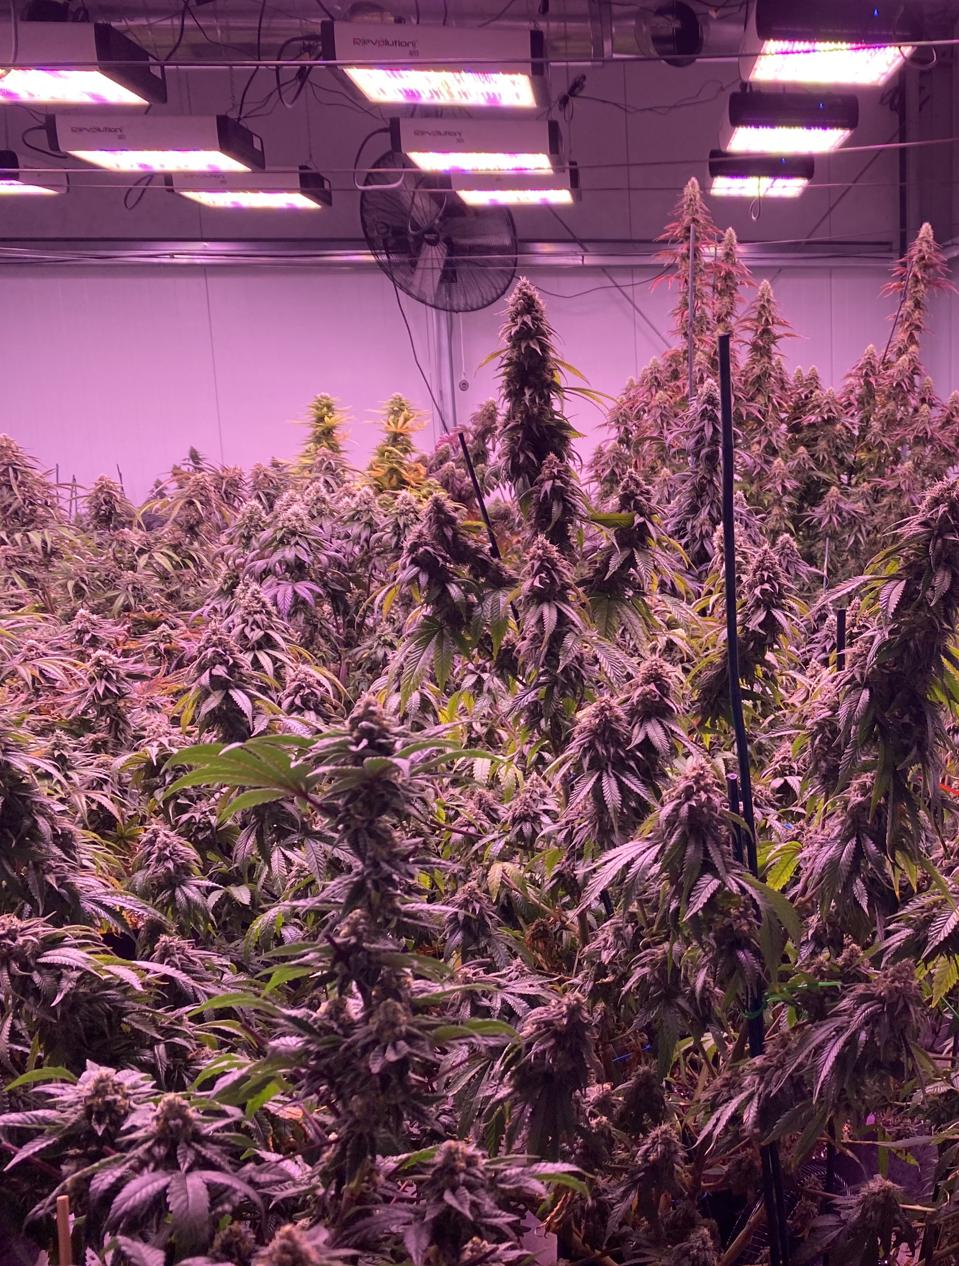 DARNELL VITATOE-GP MEDICAL RESEARCH Grow room